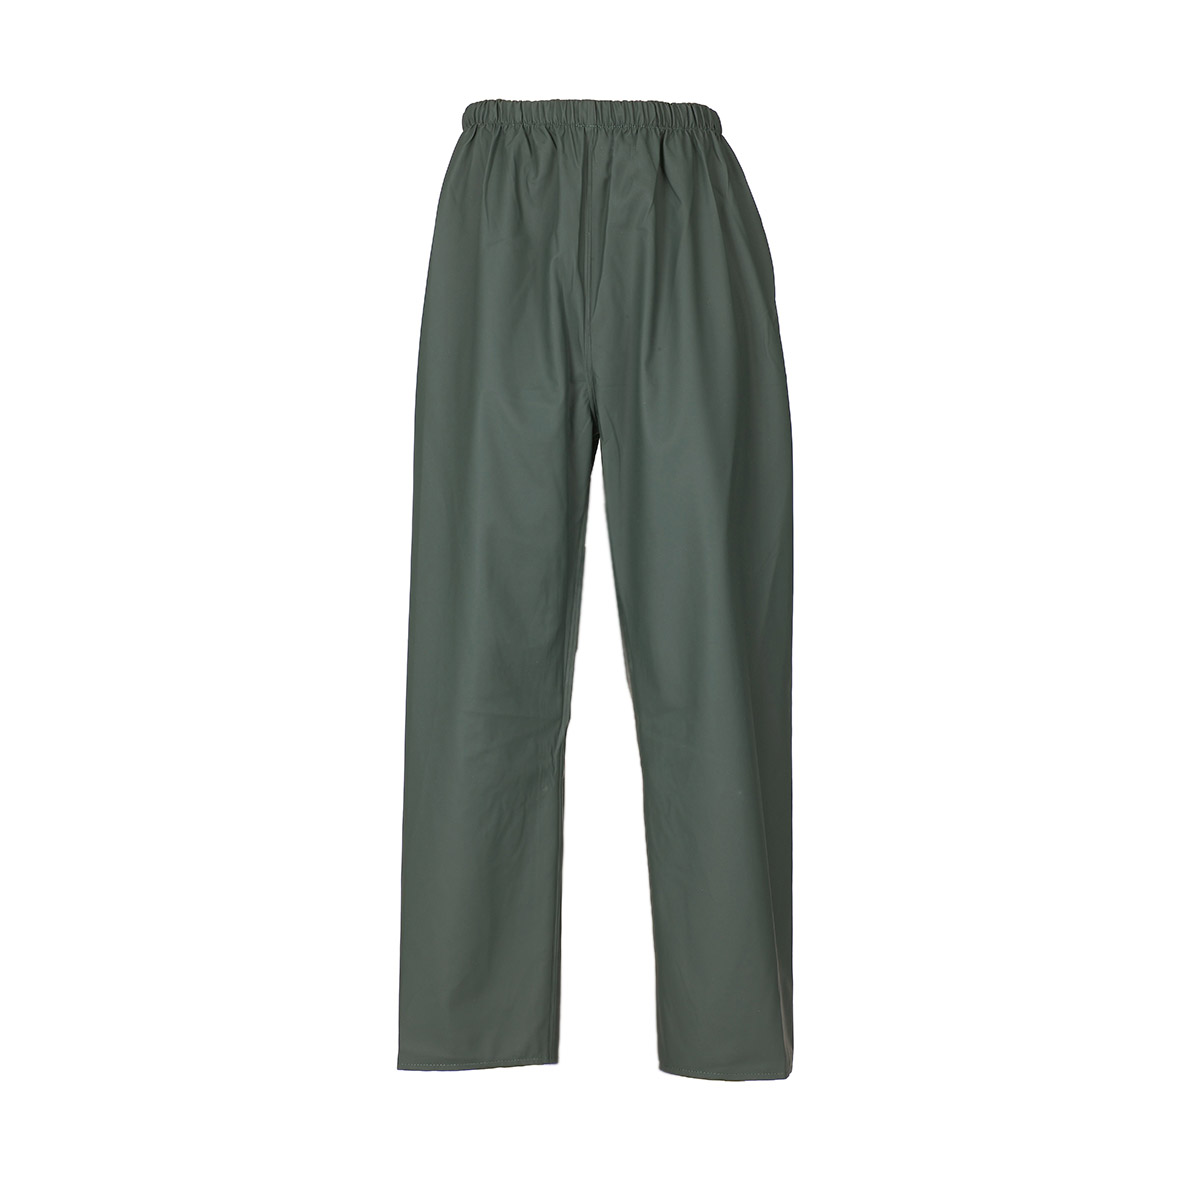 Guy Cotten Pré Green Waterproof Trousers